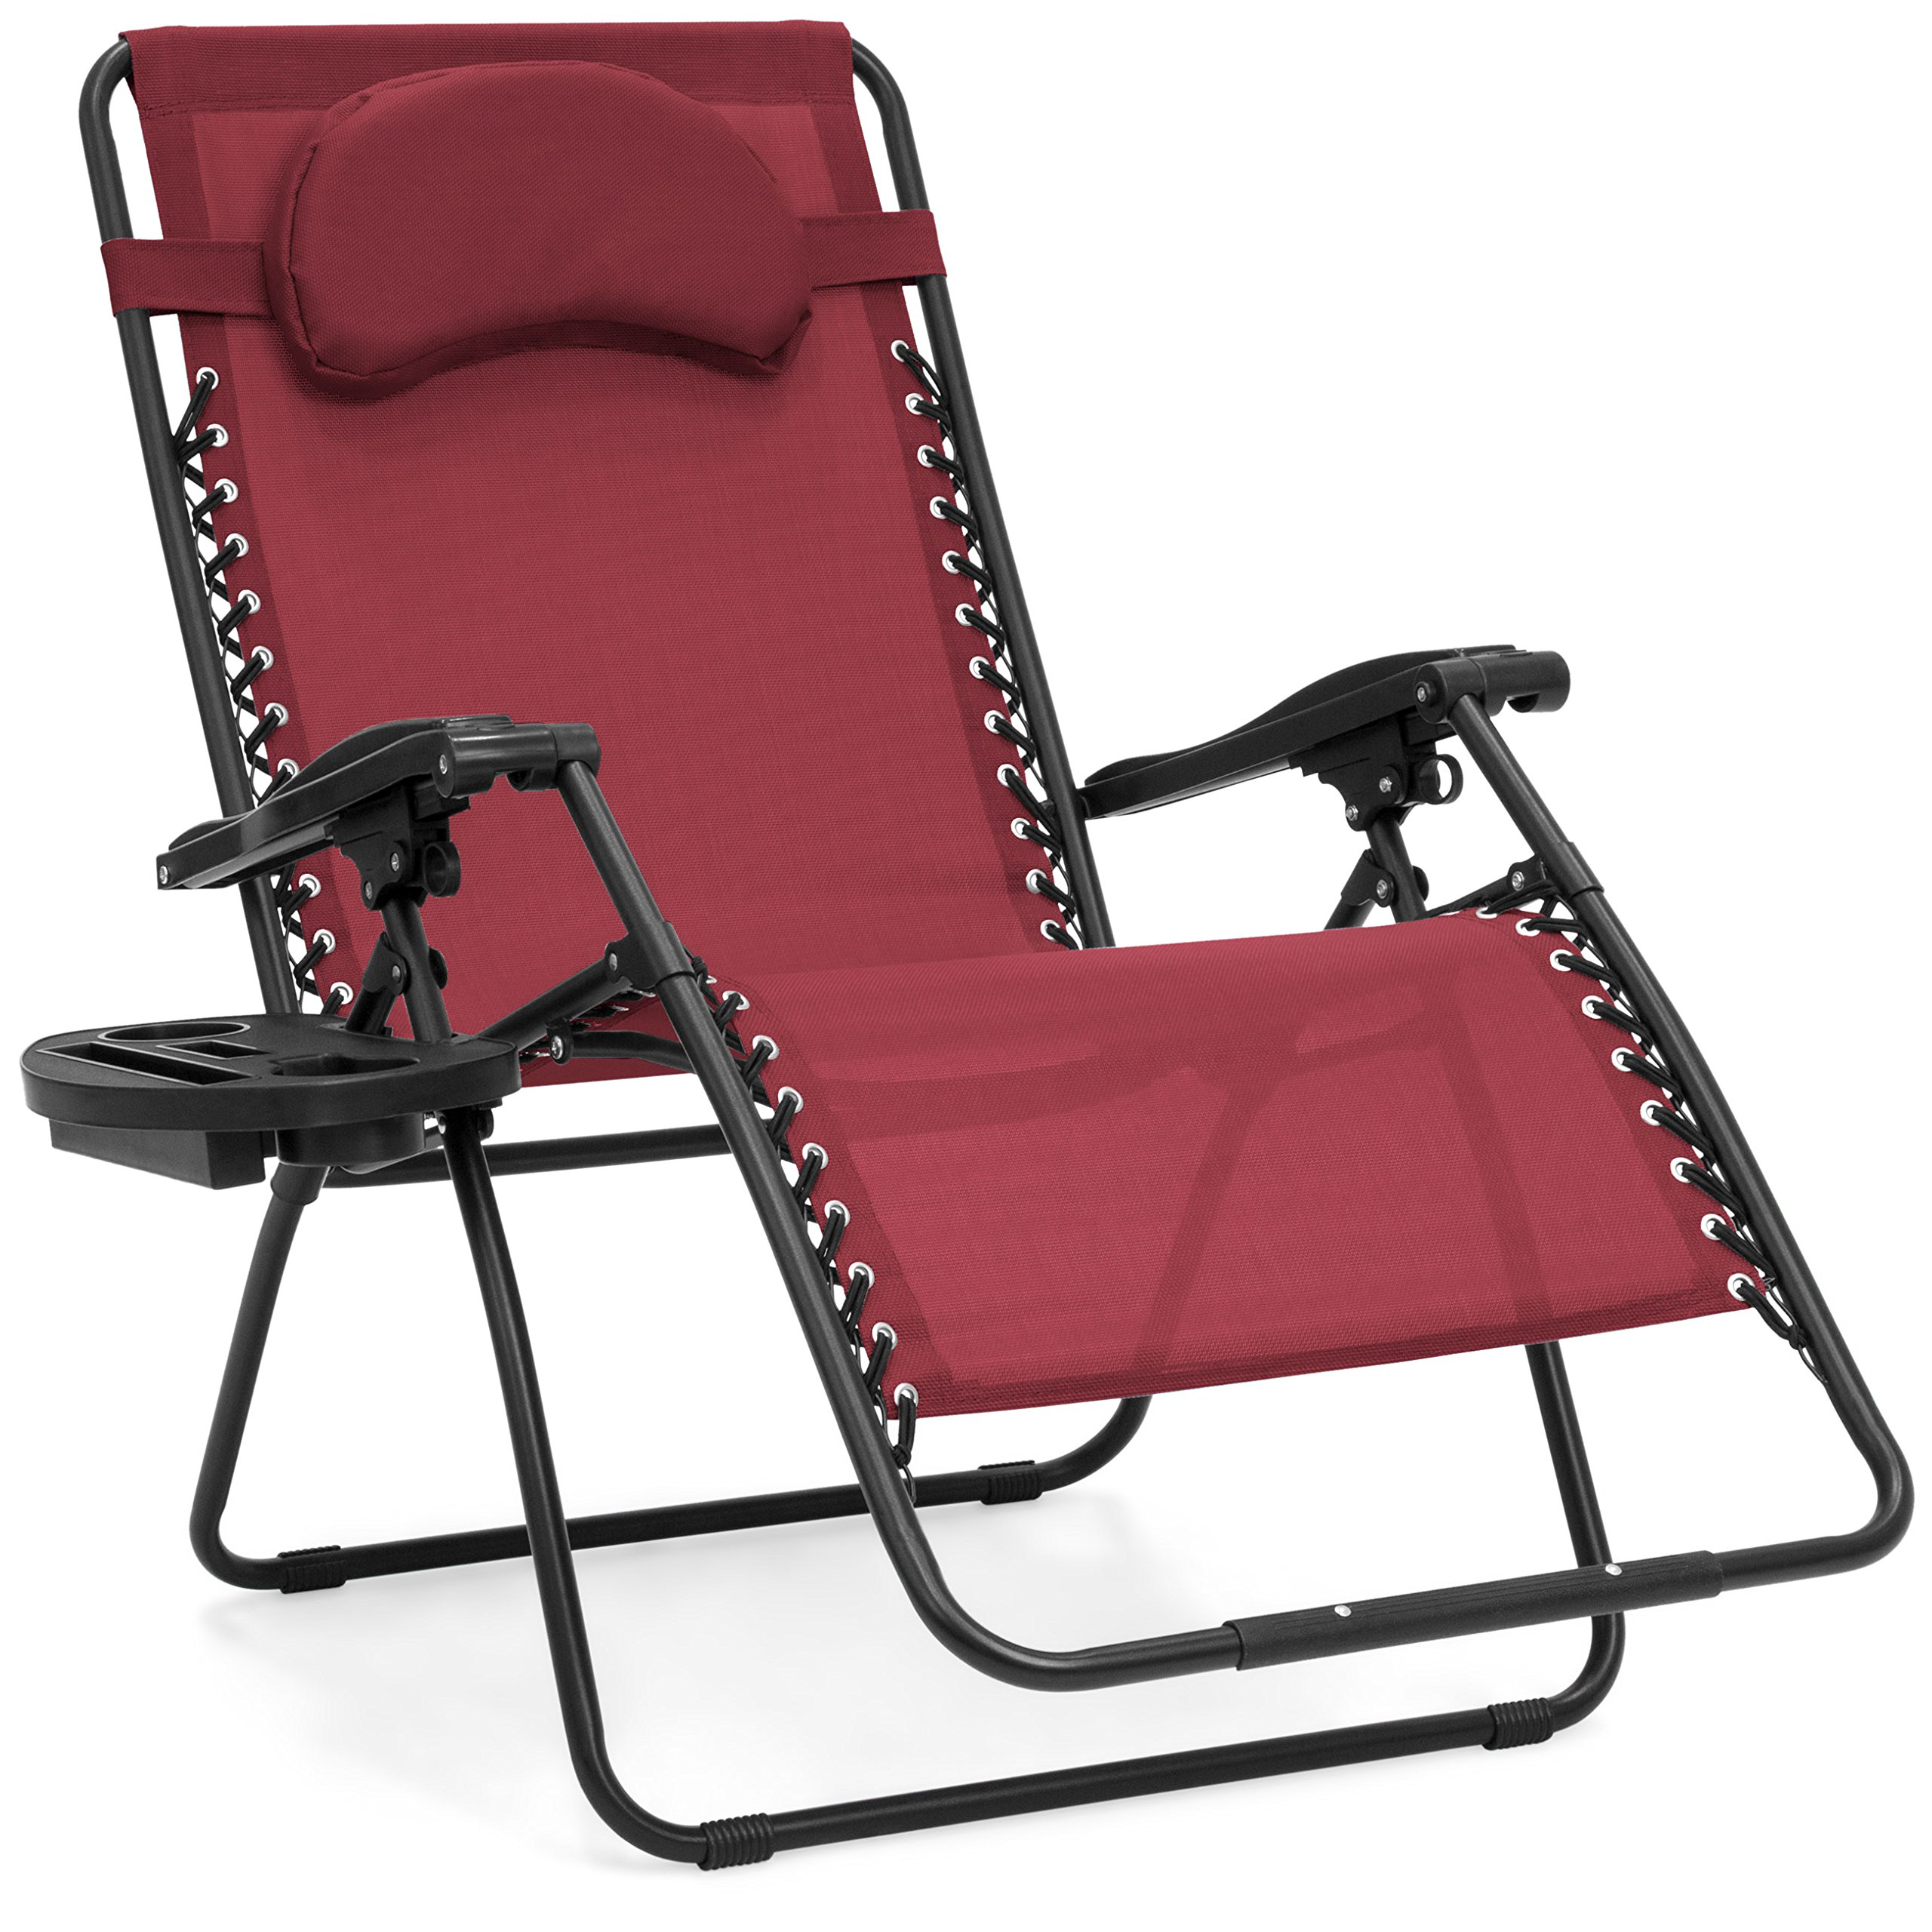 Best Choice Products Oversized Folding Mesh Zero Gravity Recliner Chair w/Cup Holder Accessory Tray and Removable Pillow, Burgundy by Best Choice Products